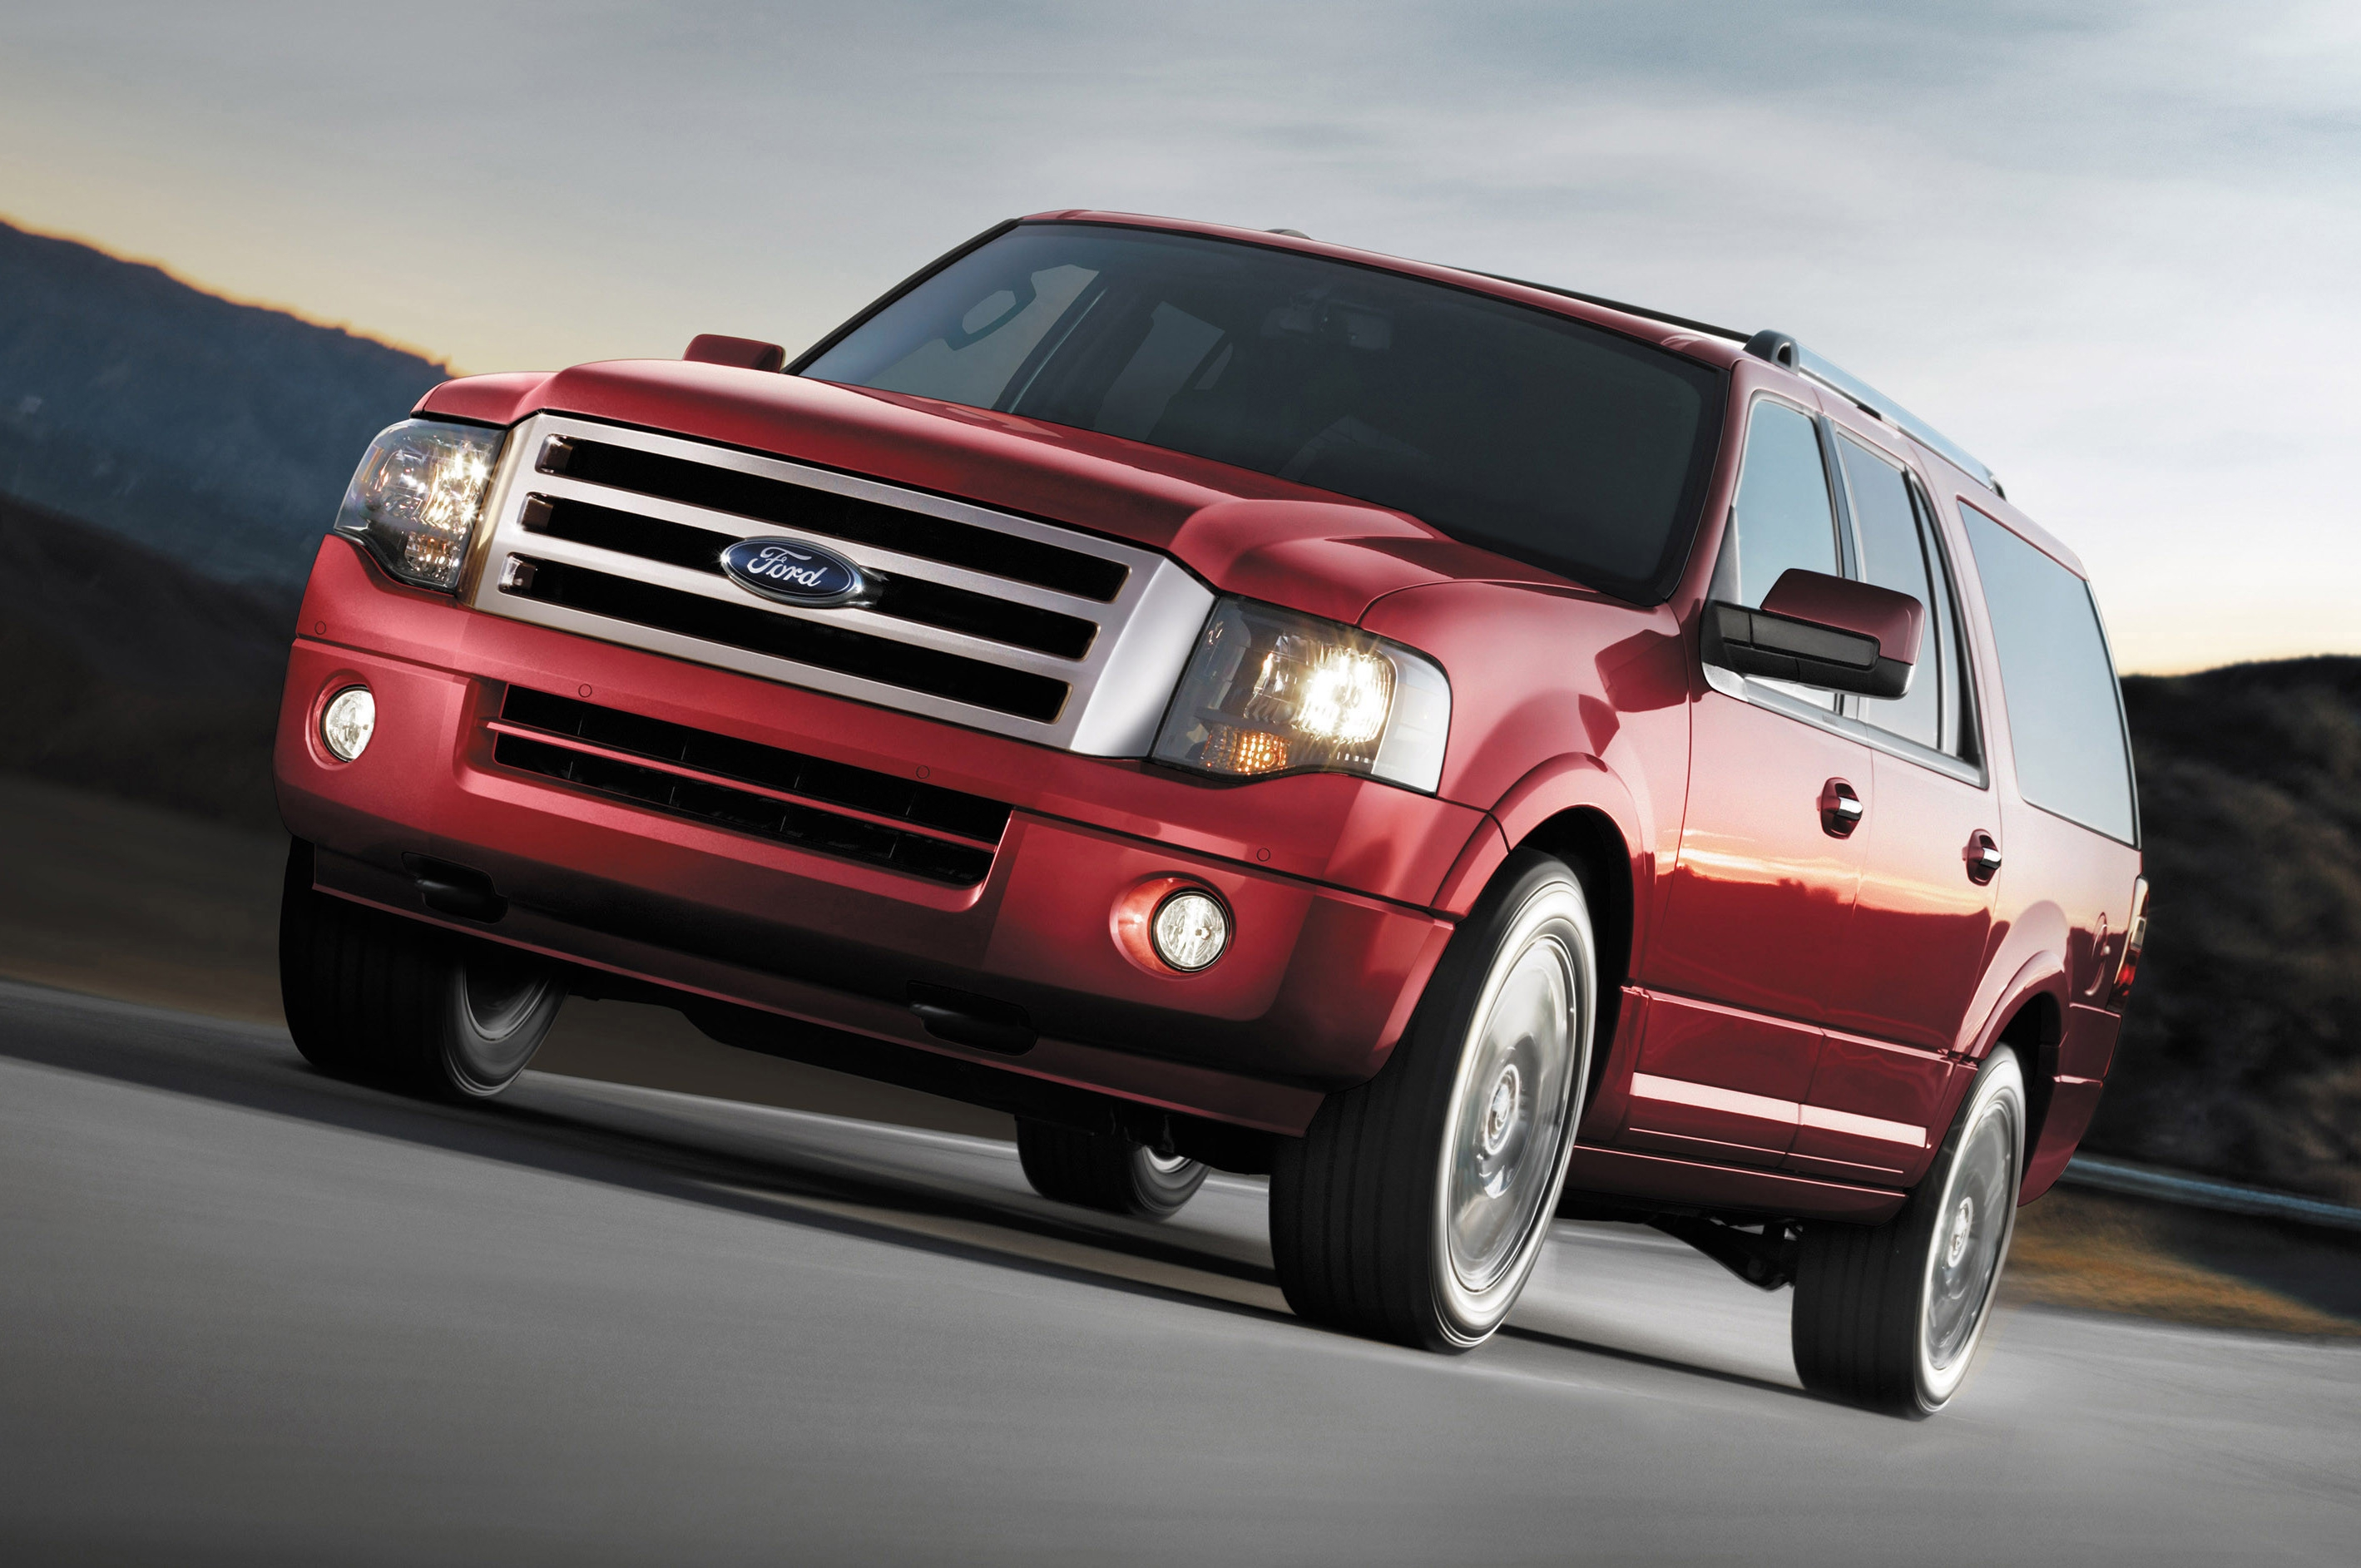 2014 Ford Expedition #10